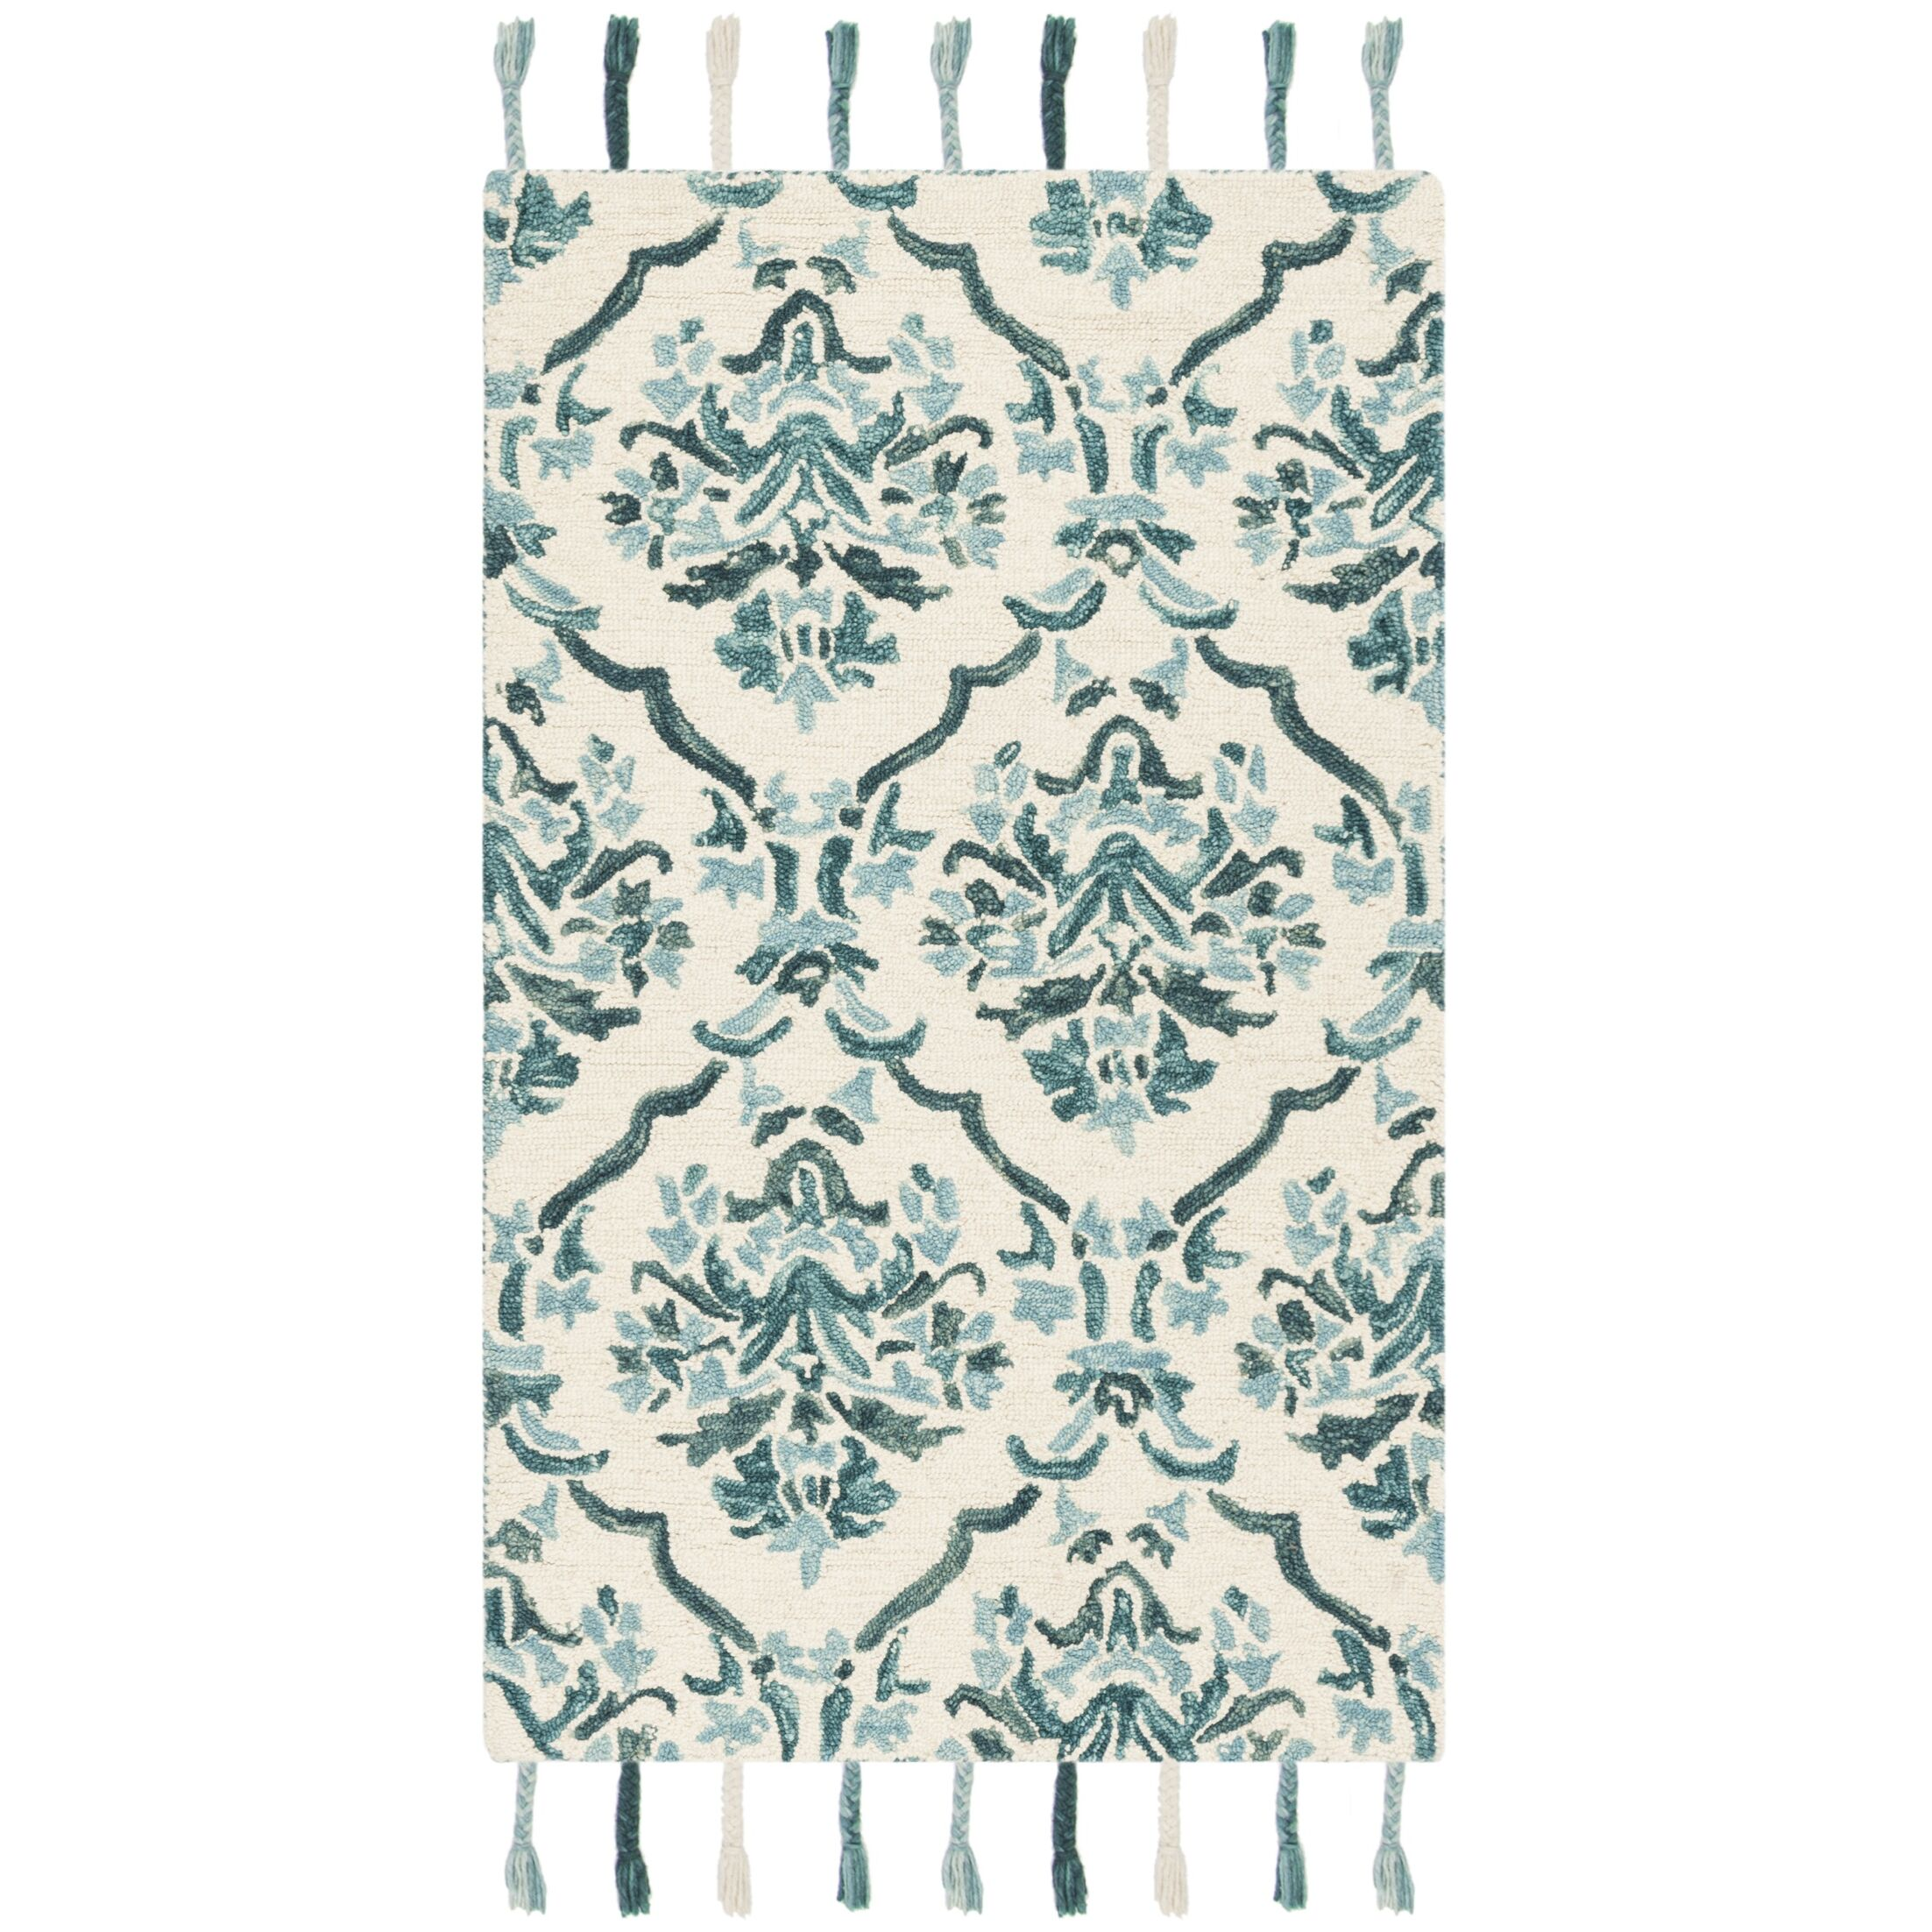 Niederanven Hand Tufted Wool Ivory/Green Area Rug Rug Size: Runner 2'3